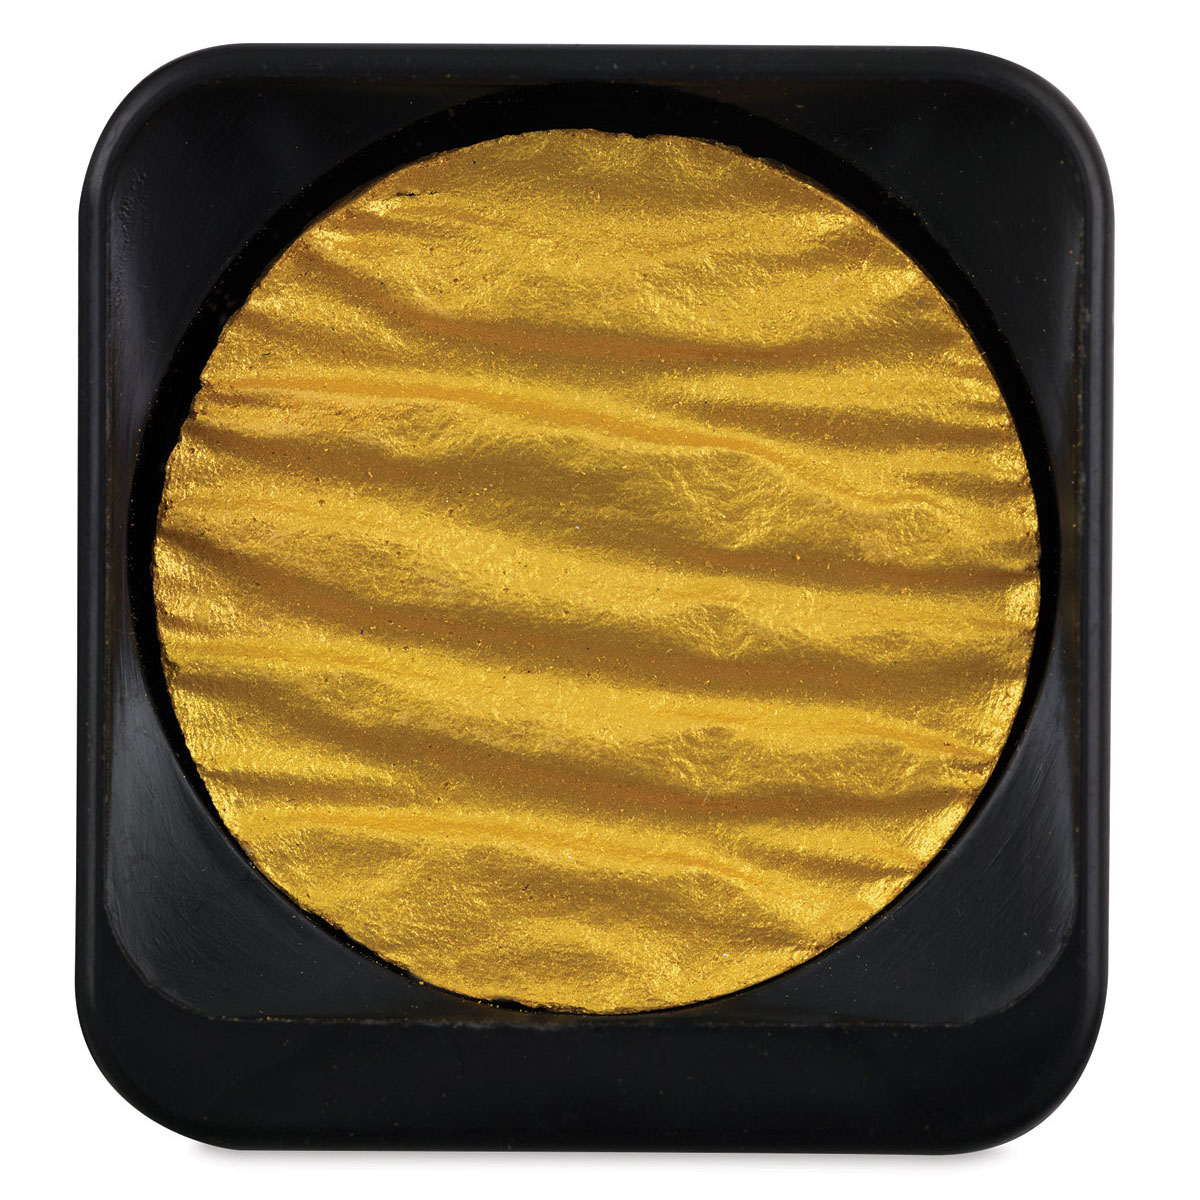 Finetec Artist Mica Watercolor Pan Refill – Pearl Gold